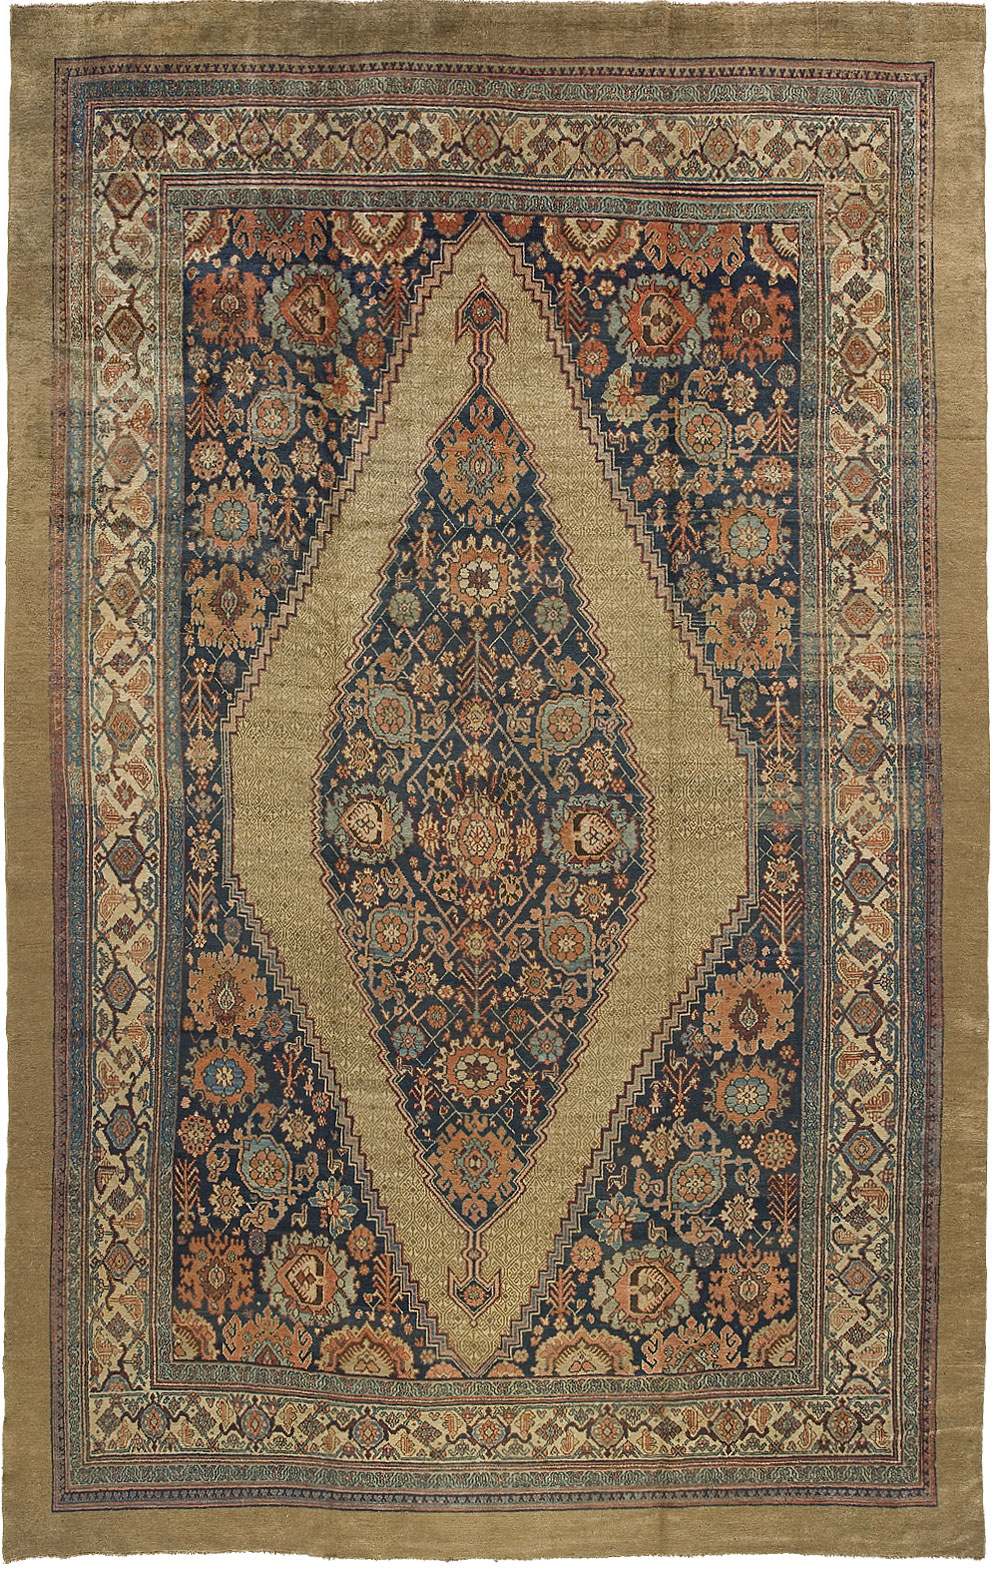 Northwest Persian Carpet_17110